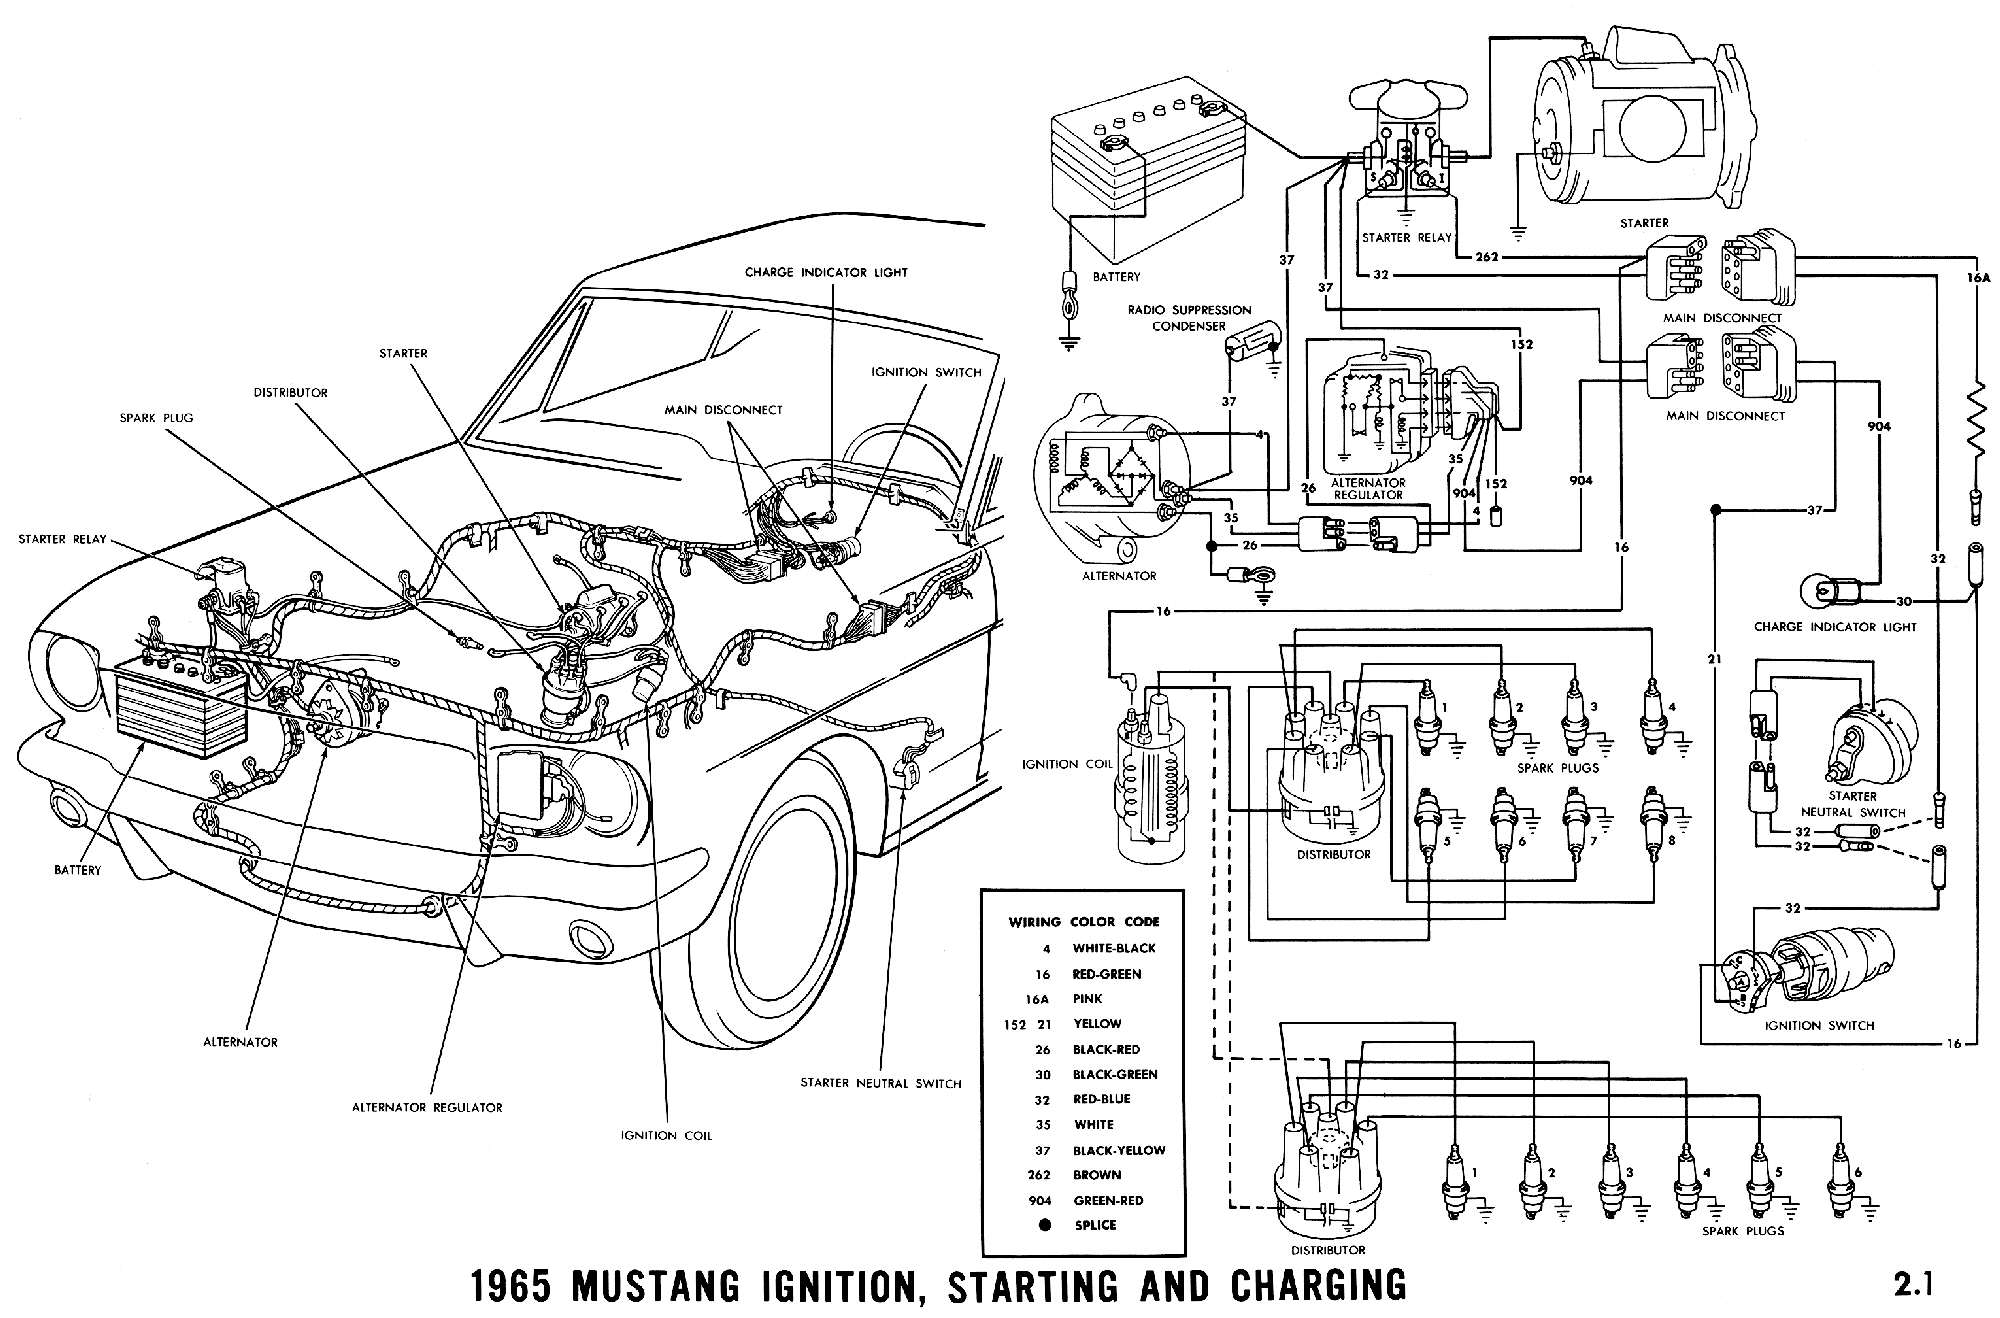 1965c 1965 mustang wiring diagrams average joe restoration 1965 Mustang Restoration Guide at gsmx.co